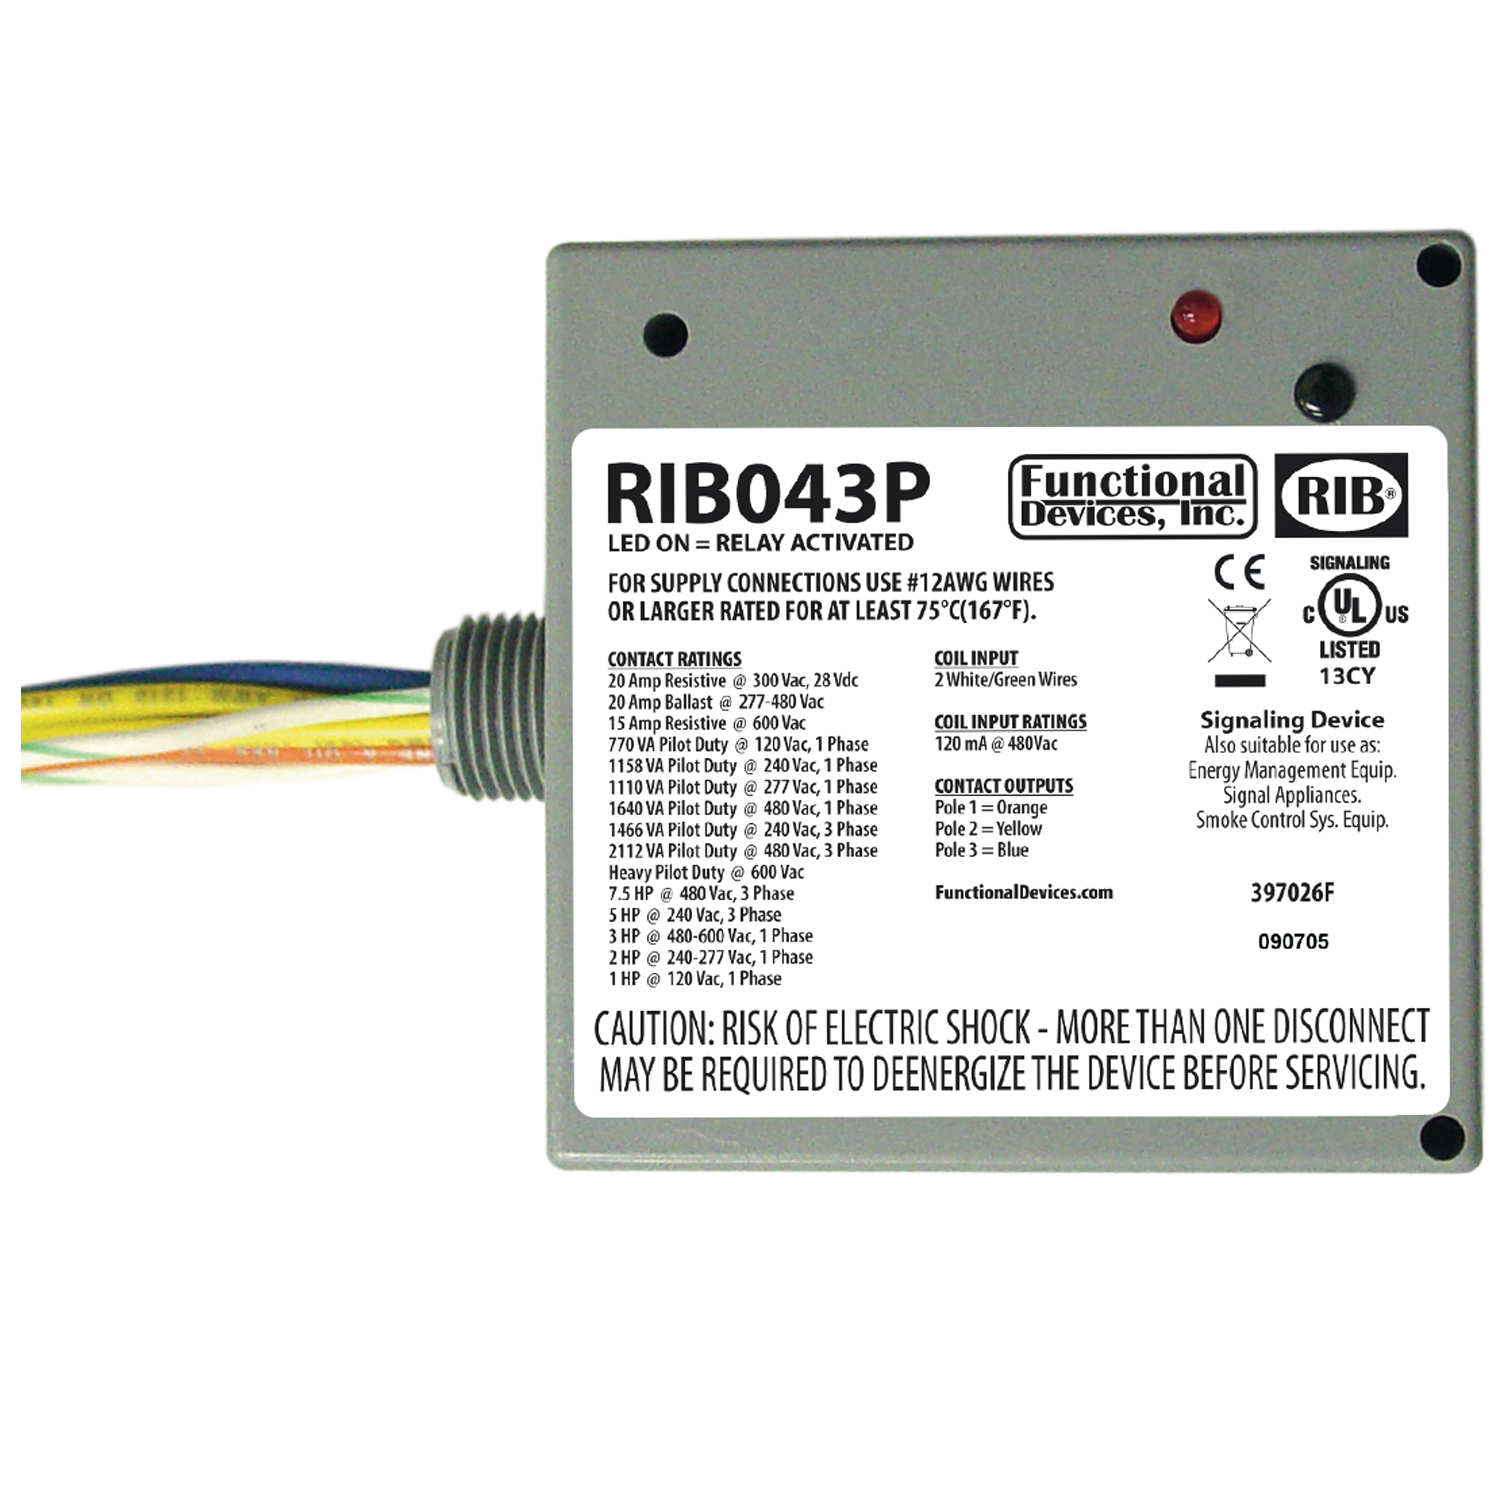 Functional Devices Rib Rib043p Enclosed Relay 20amp 3pst 480vac At Power Rating Controls Central